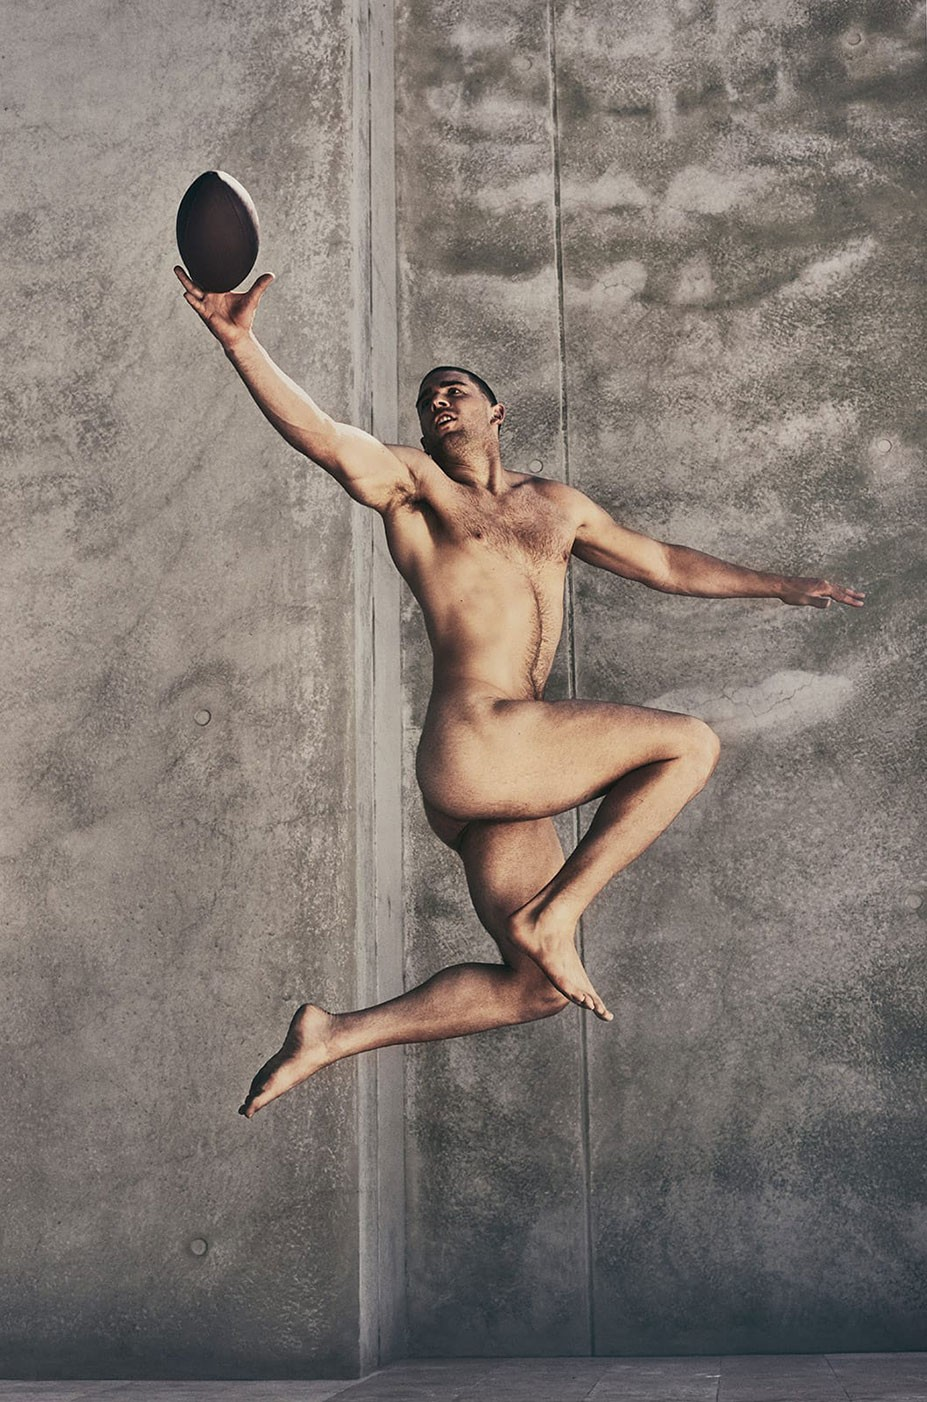 Julie and Zach Ertz - ESPN The Body Issue 2017 / photo by Carlos Serrao